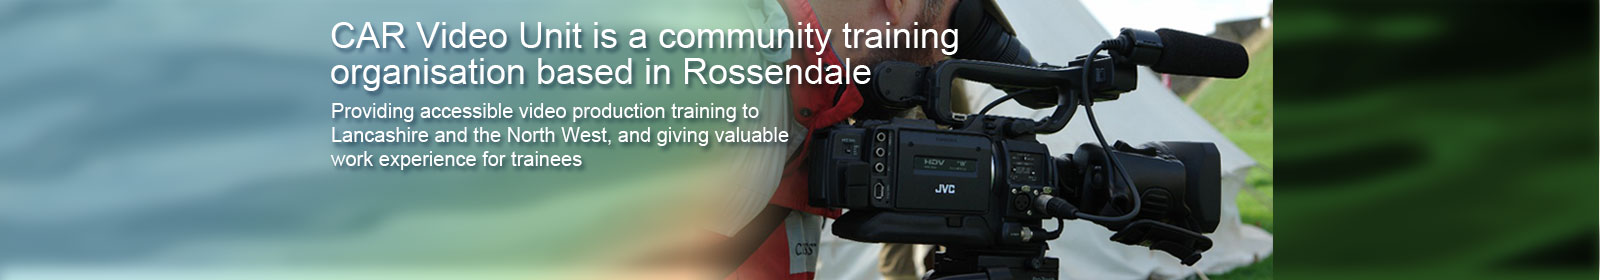 CAR Video Unit is a community training organisation based in Rossendale, Providing accessible video production training to Lancashire and the North West, and giving valuable work experience for trainees